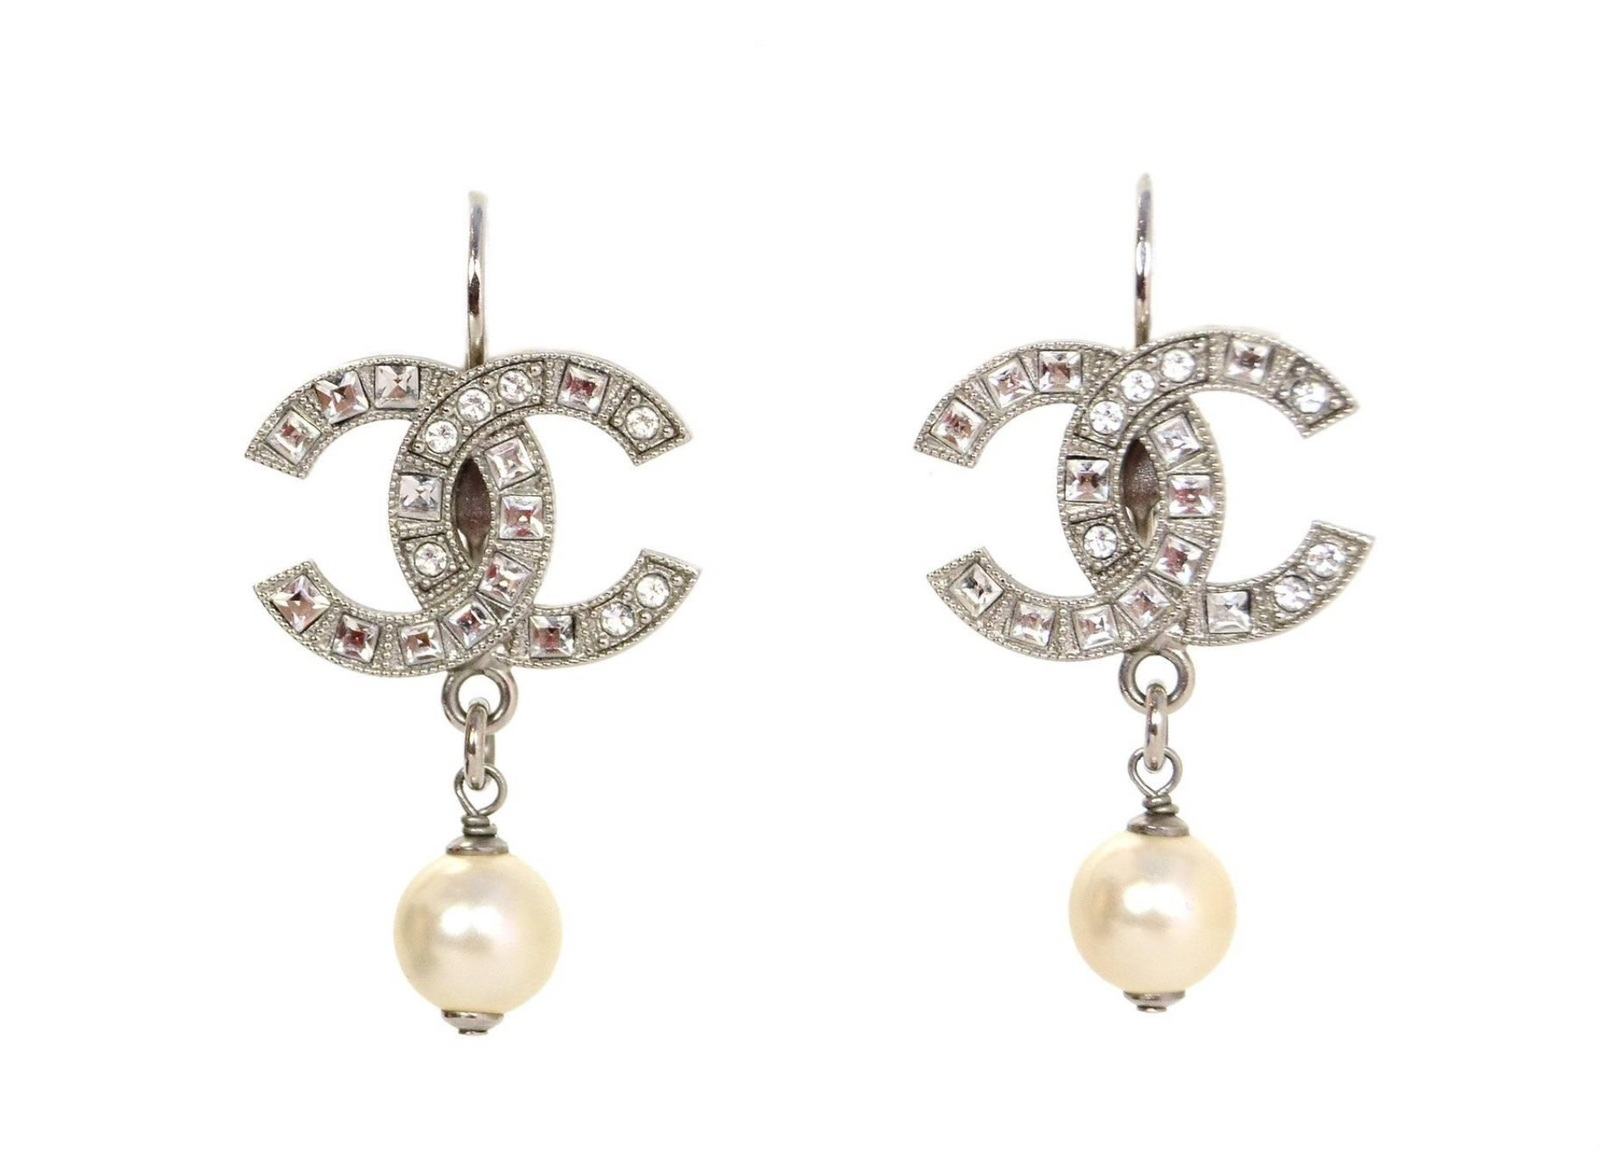 AUTHENTIC CHANEL LARGE CRYSTAL PEARL CC LOGO RHINESTONE EARRINGS GOLD